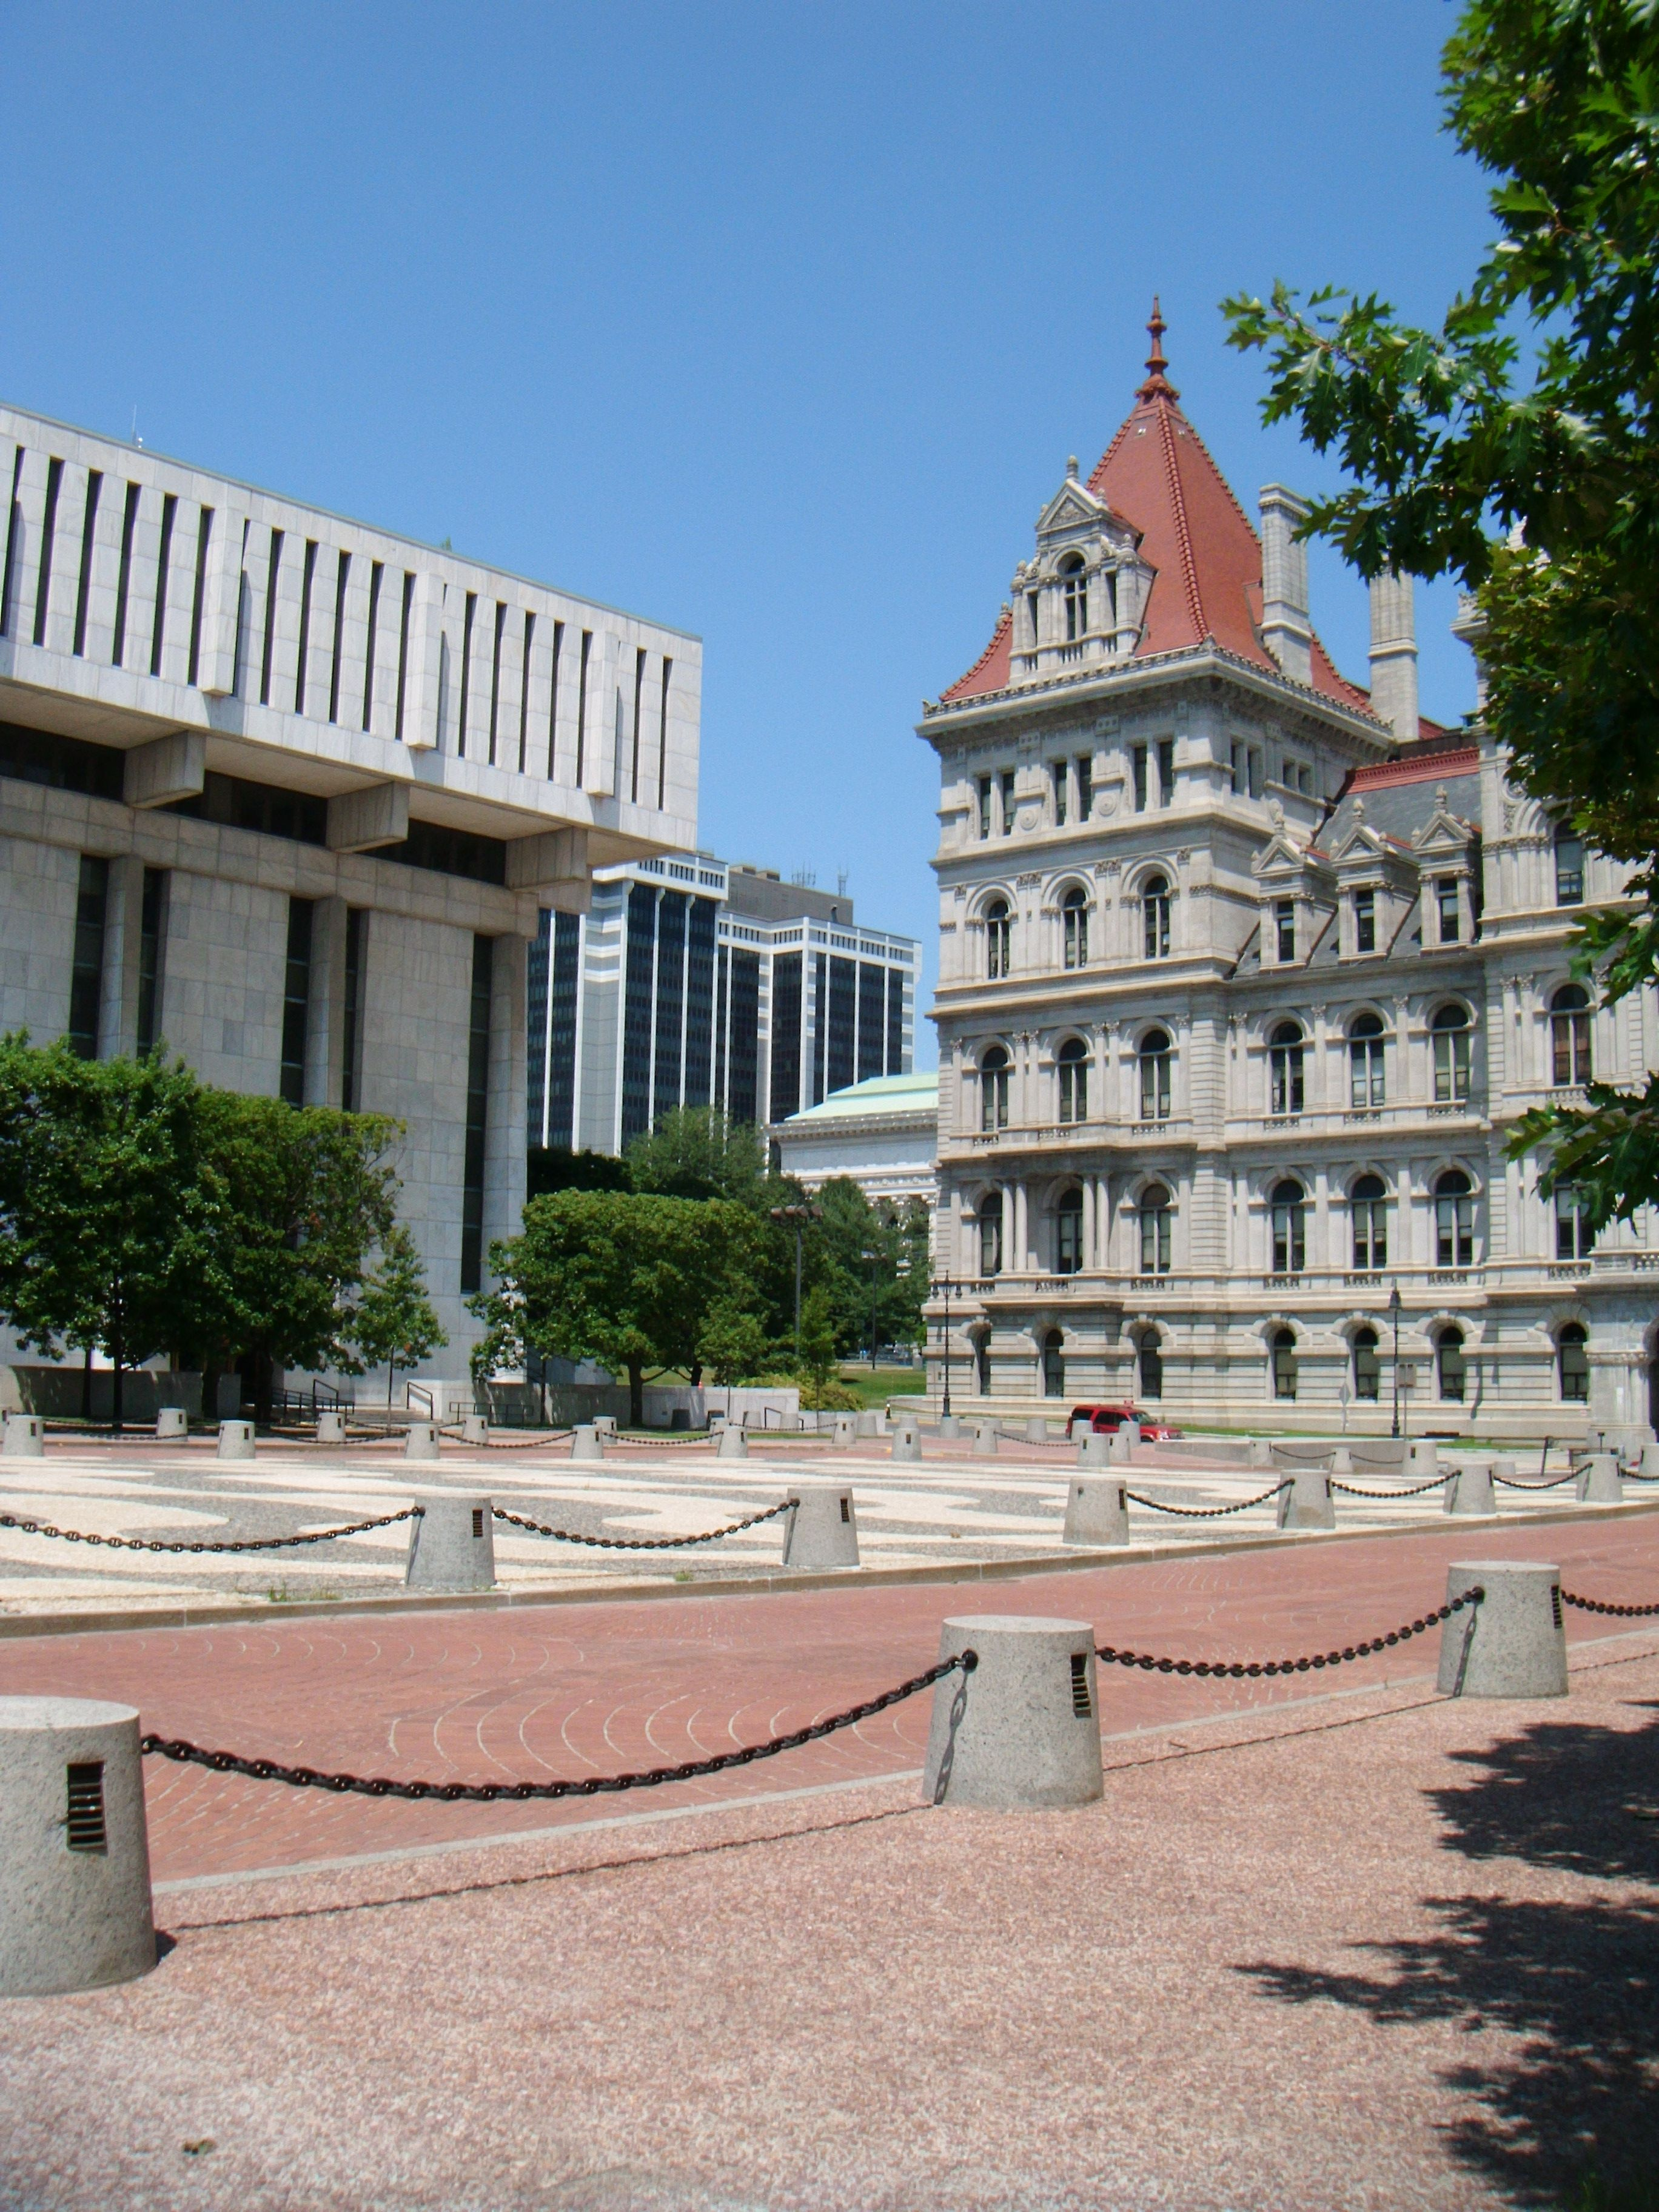 Albany New York, Upstate New York, Great Places